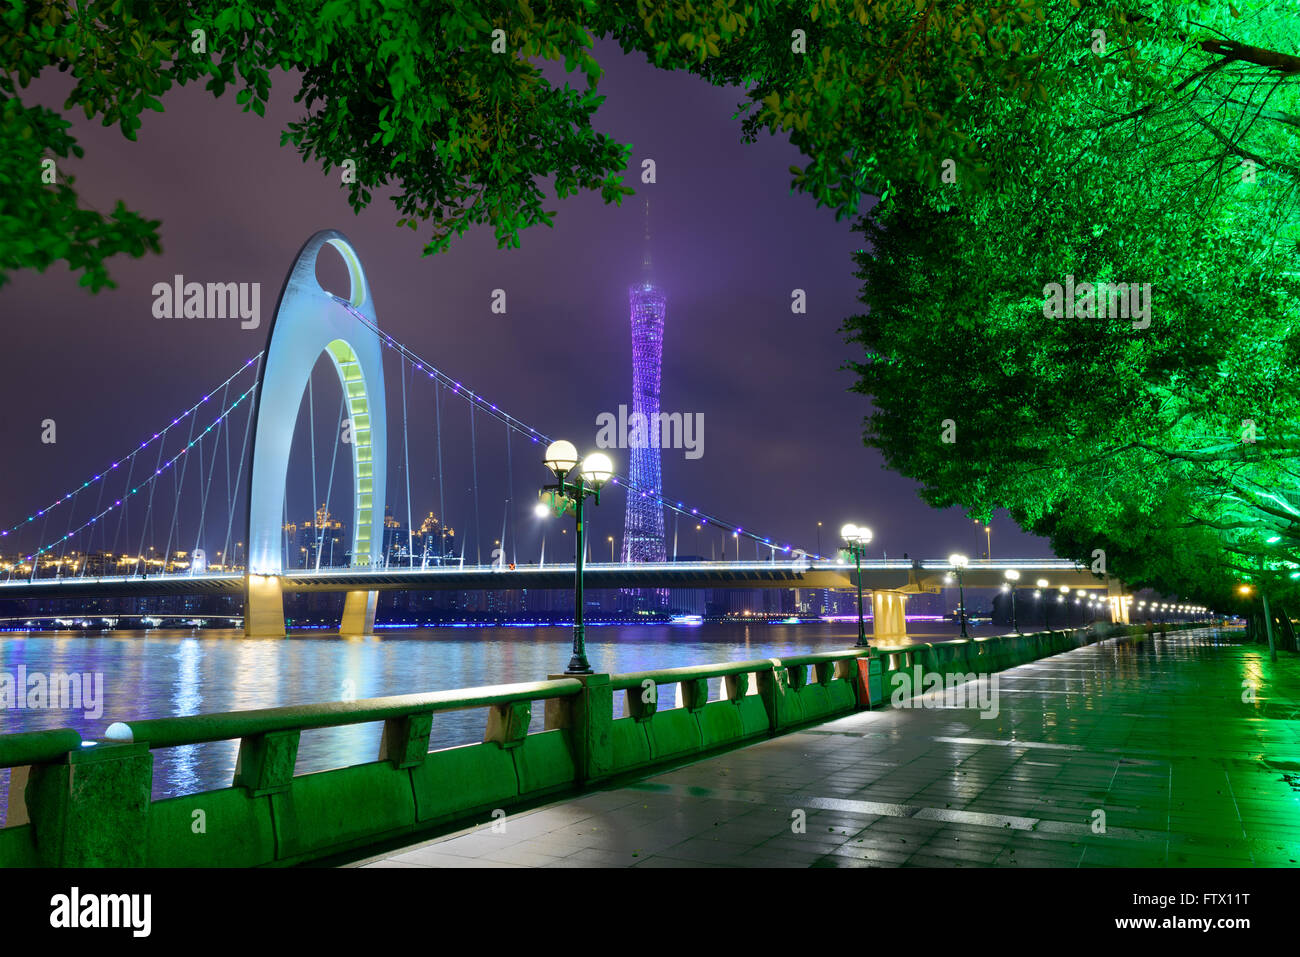 Guangzhou, China river skyline. - Stock Image